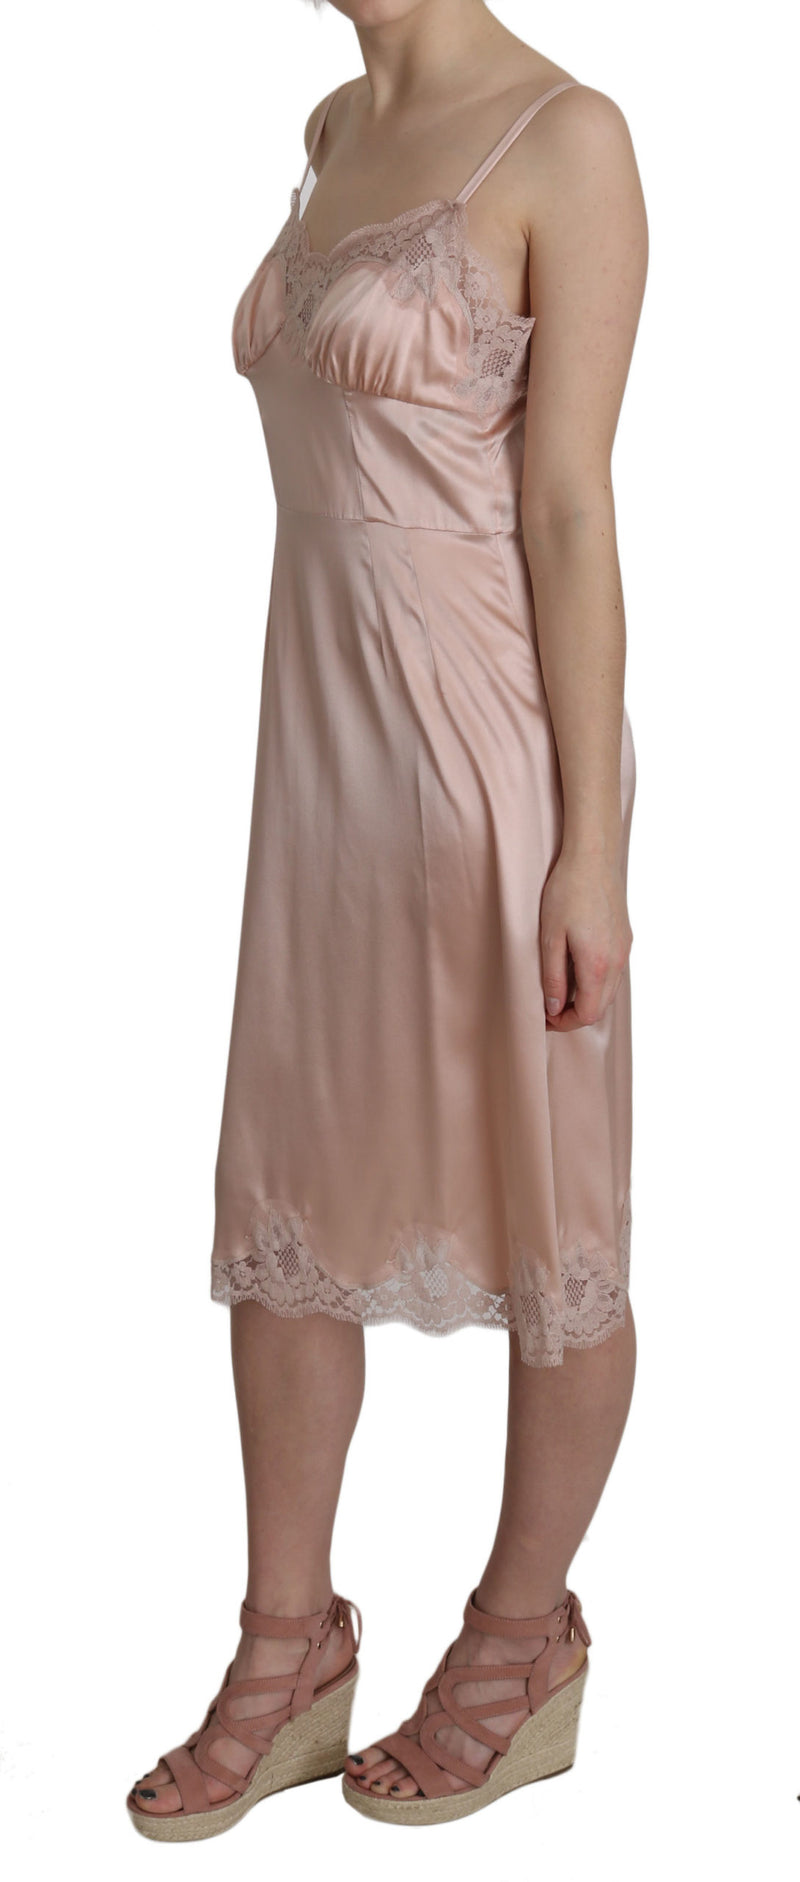 Peach Silk Stretch Sheath Lace Dress